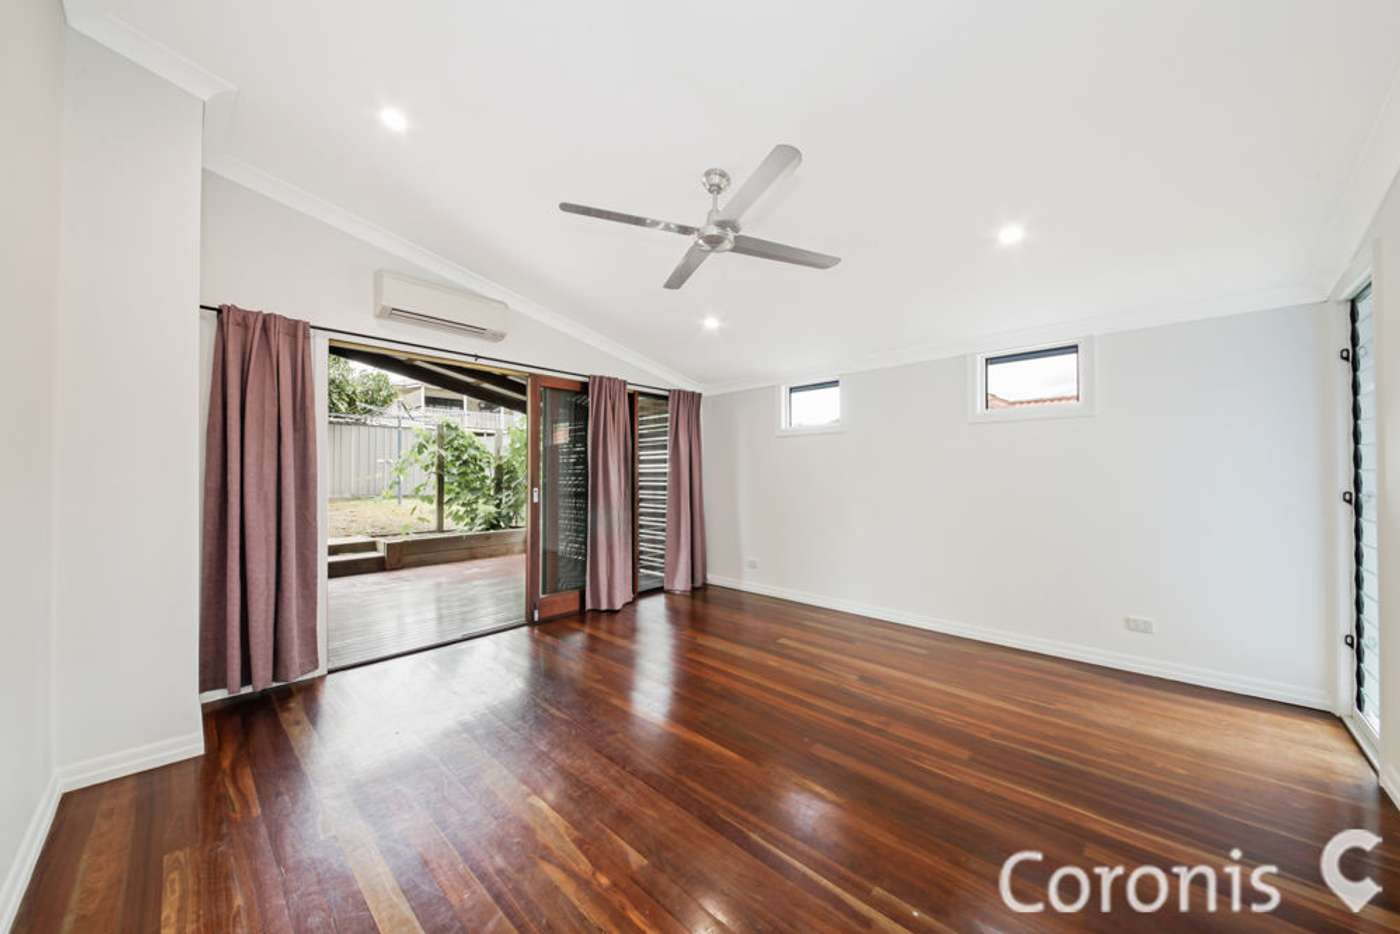 Fifth view of Homely house listing, 33 Asquith Street, Morningside QLD 4170